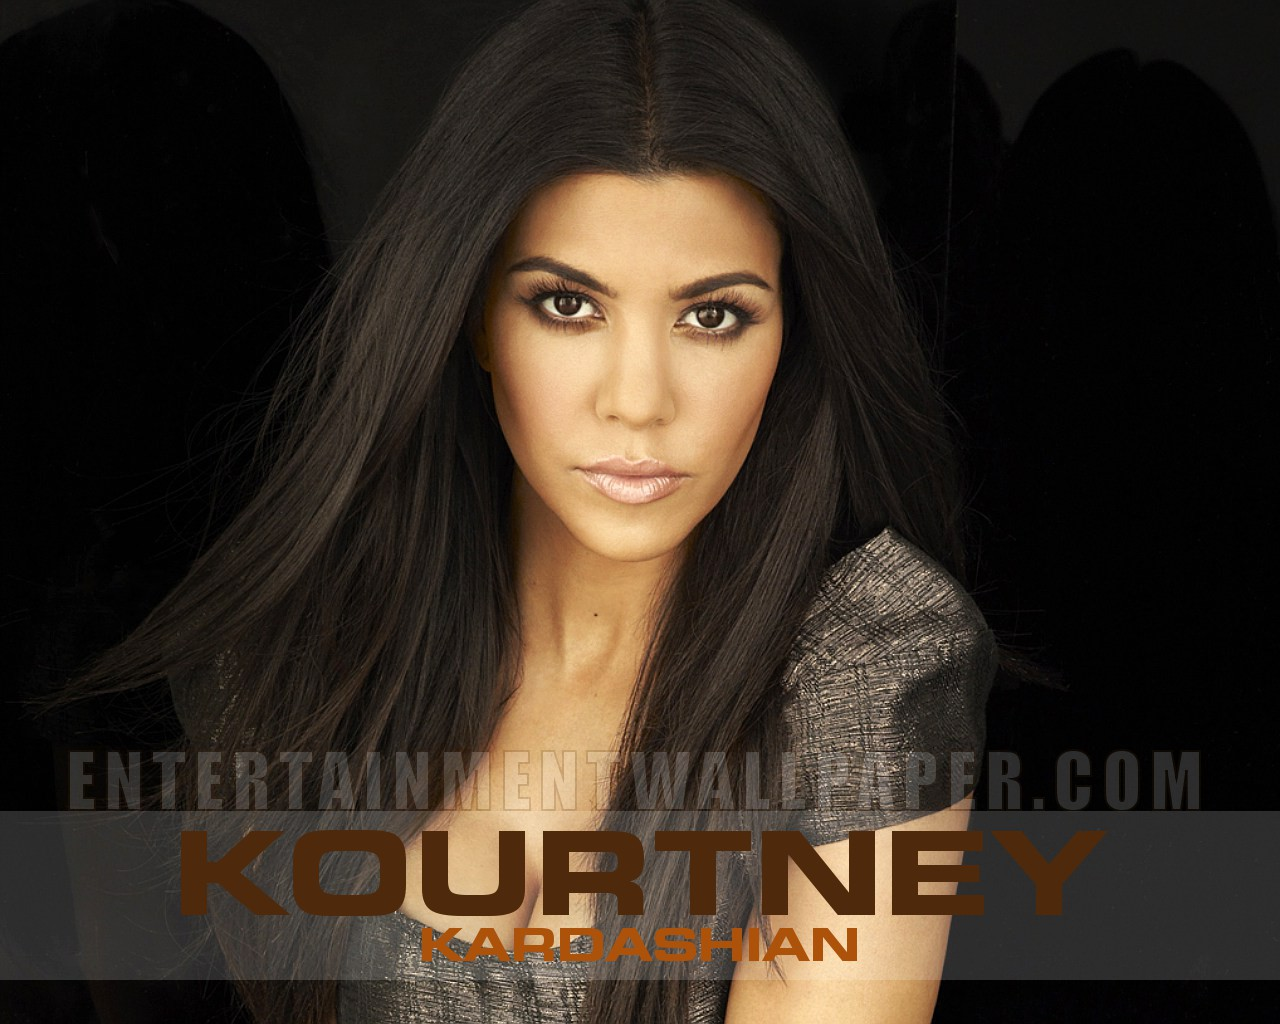 Kourtney Kardashian Pictures 5 HD Wallpapers